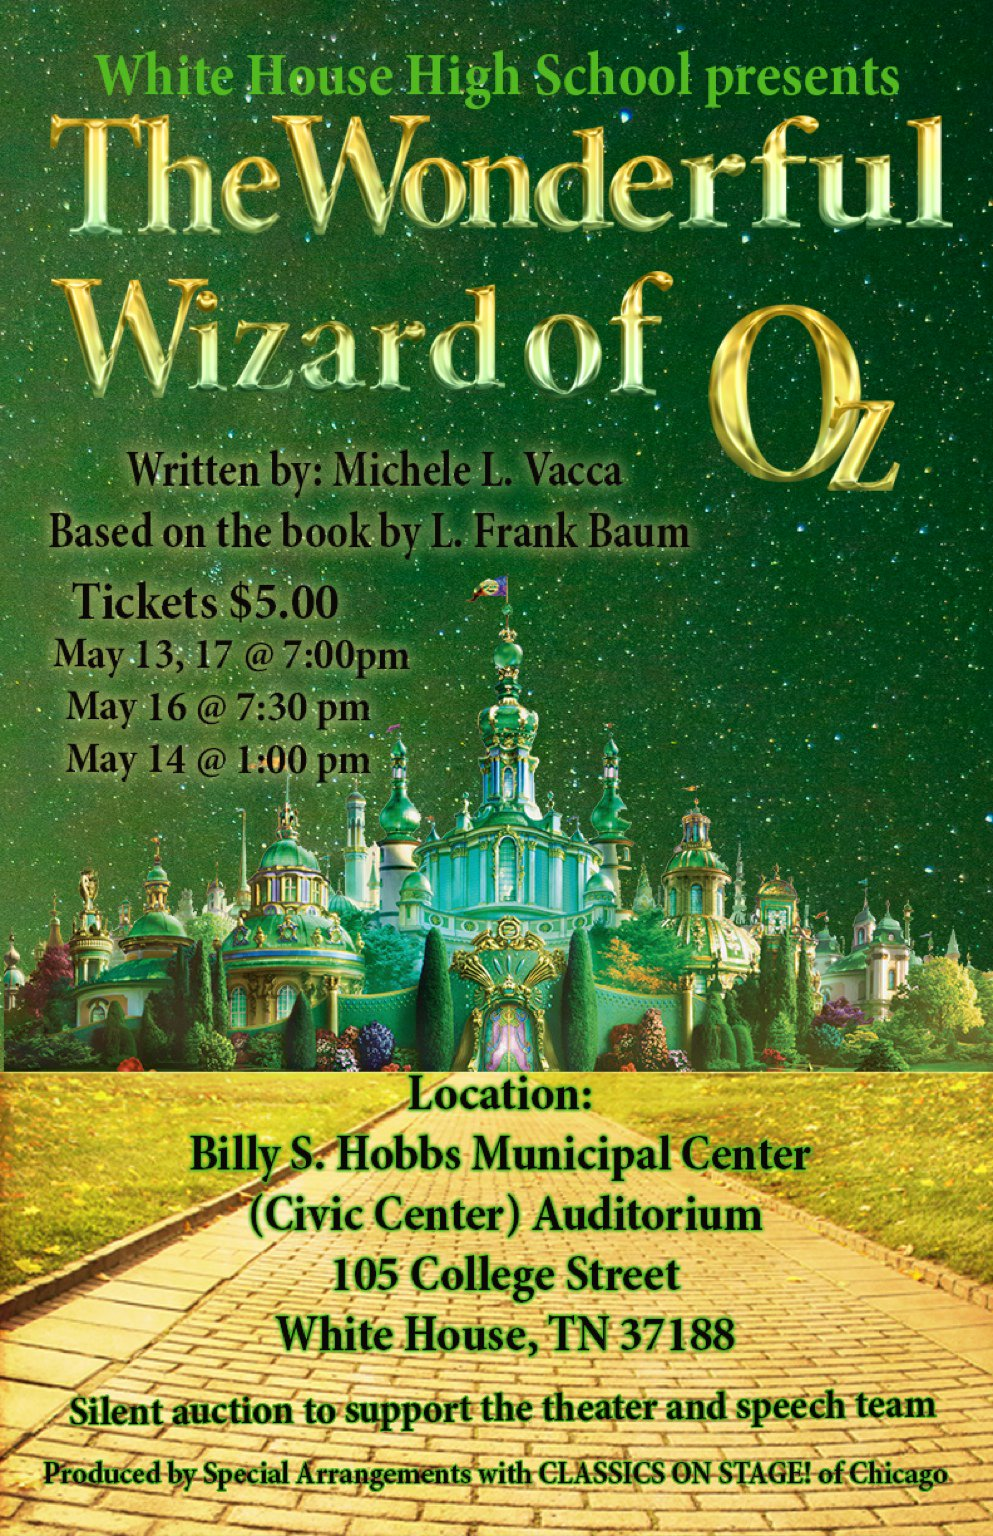 Theatre Presents The Wonderful Wizard of Oz @ Civic Center